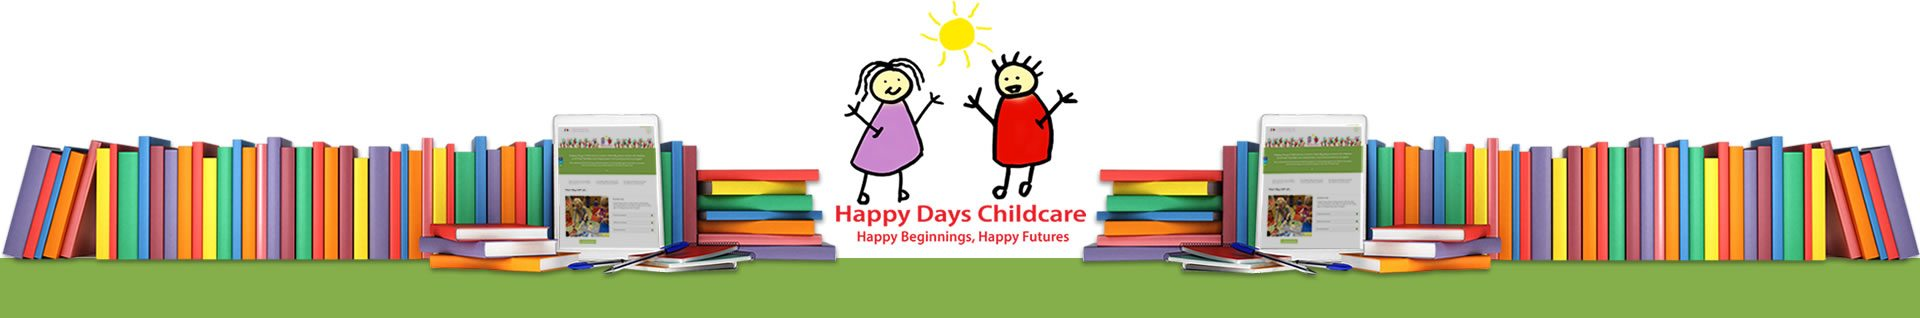 Happy Days Childcare documents